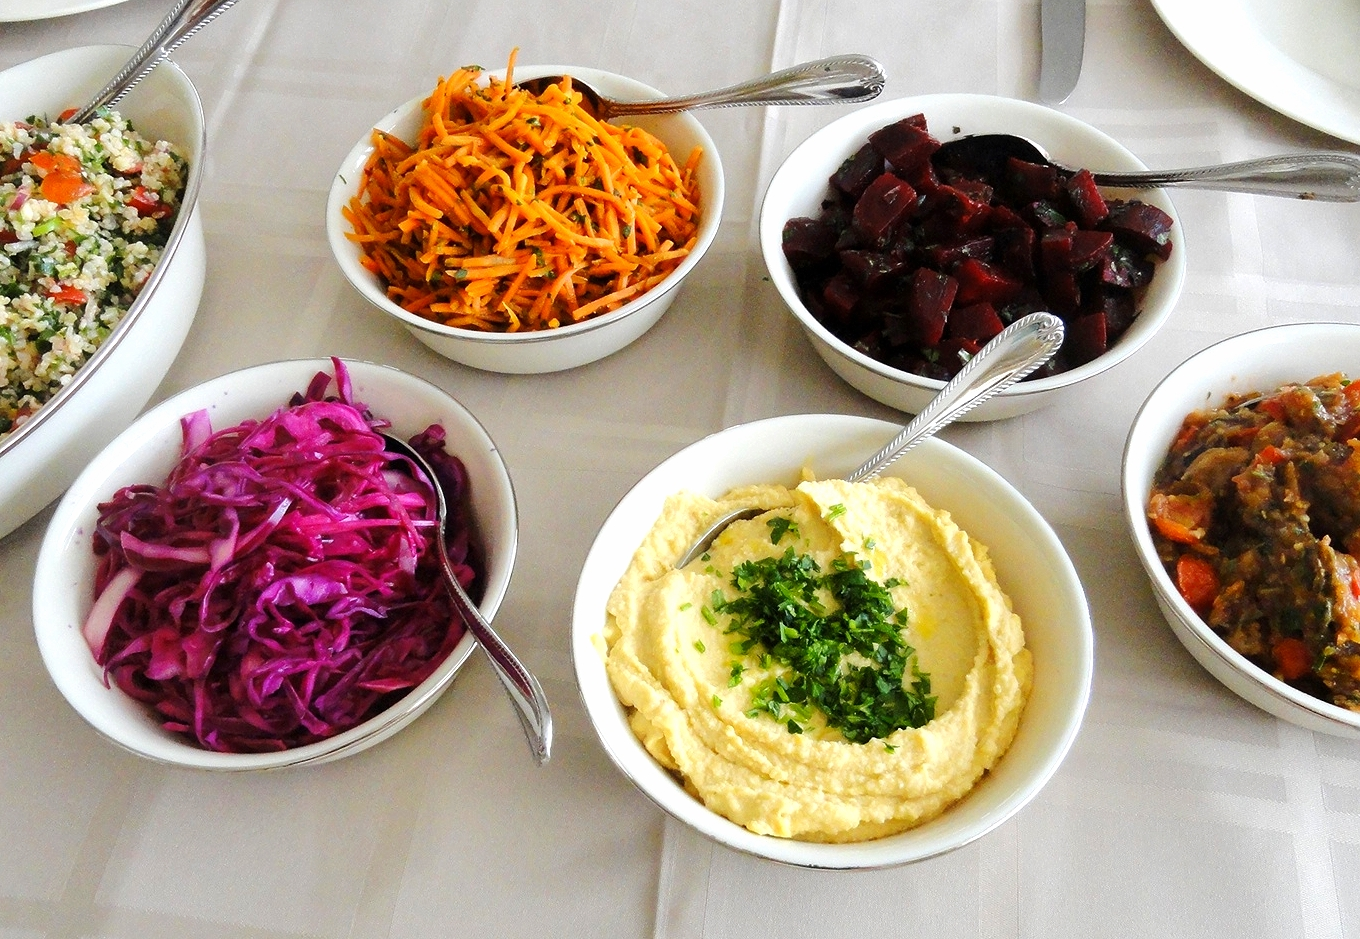 Israeli salads: vegetable Israeli couscous, red cabbage, carrot-cumin, hummus, Moroccan spiced beets, roasted eggplant and tomato with za'atar